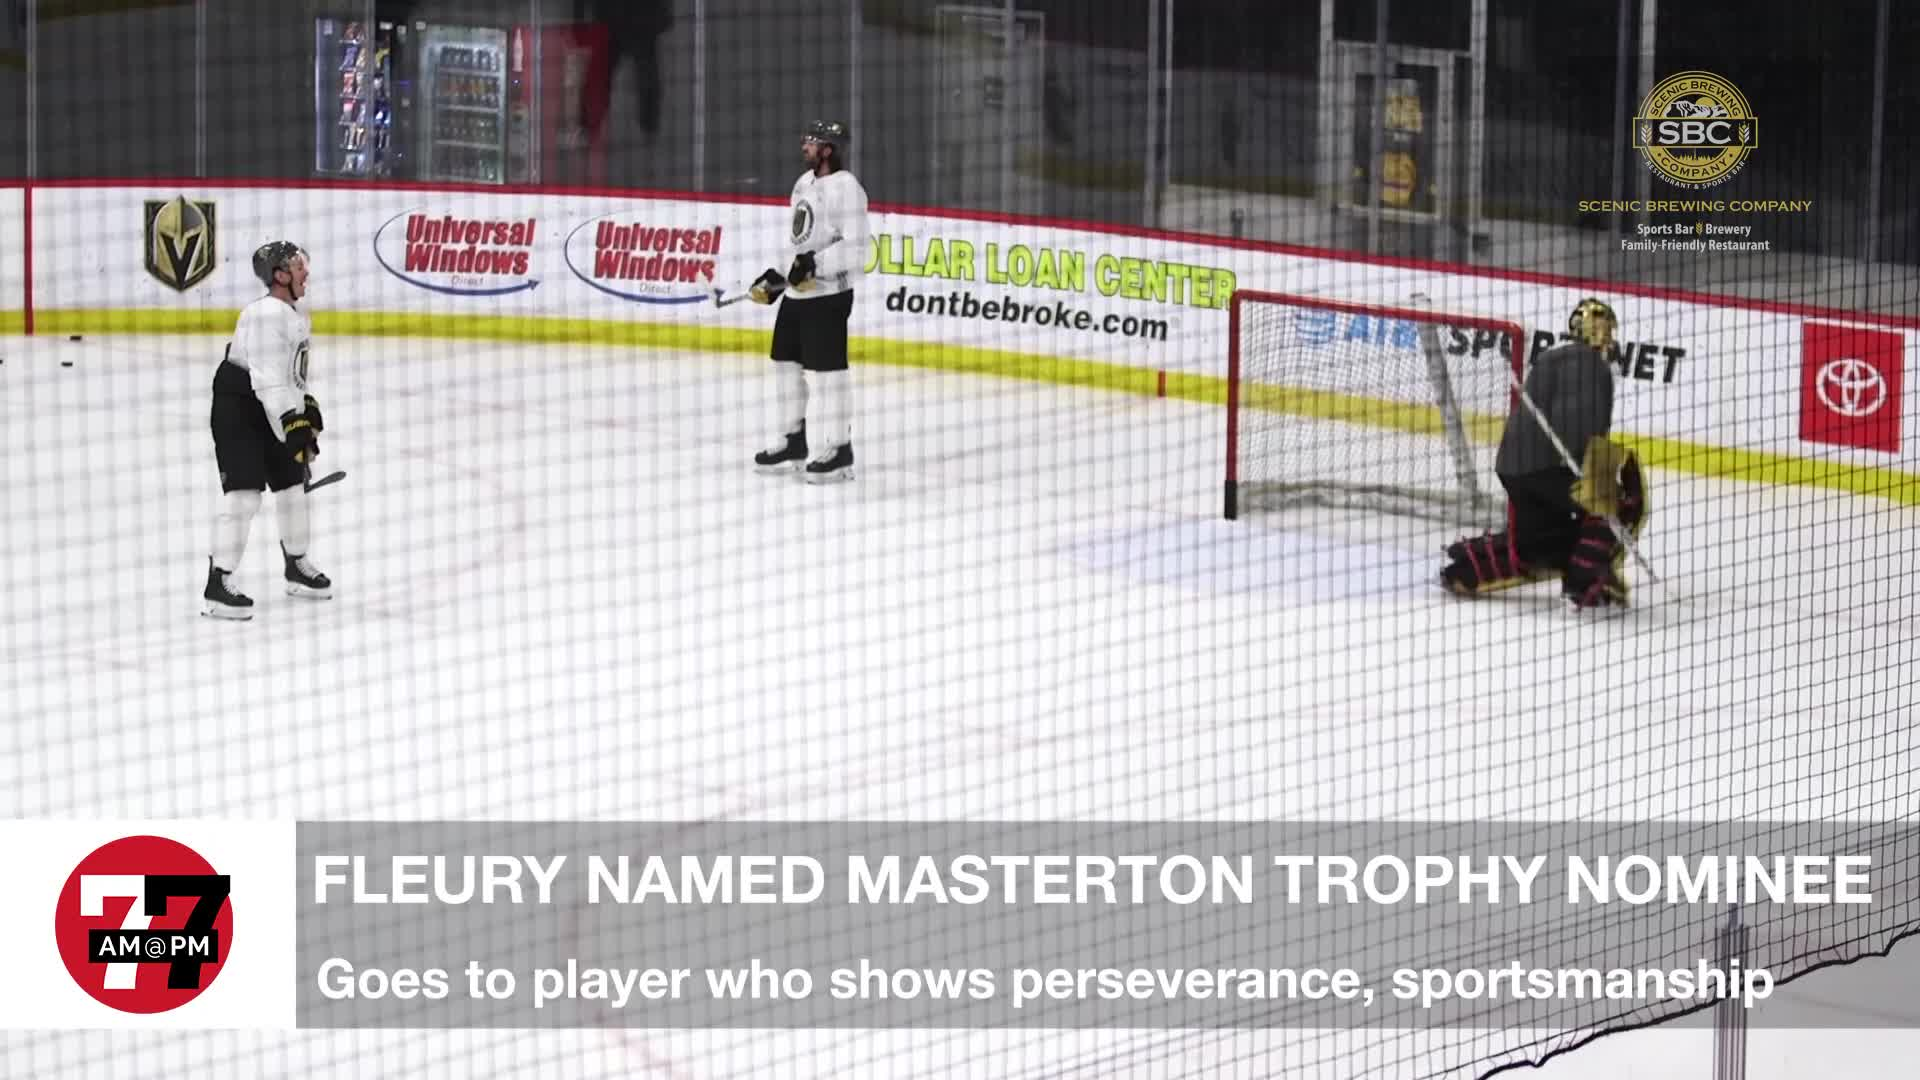 7@7PM Fleury Named Masterton Trophy Nominee